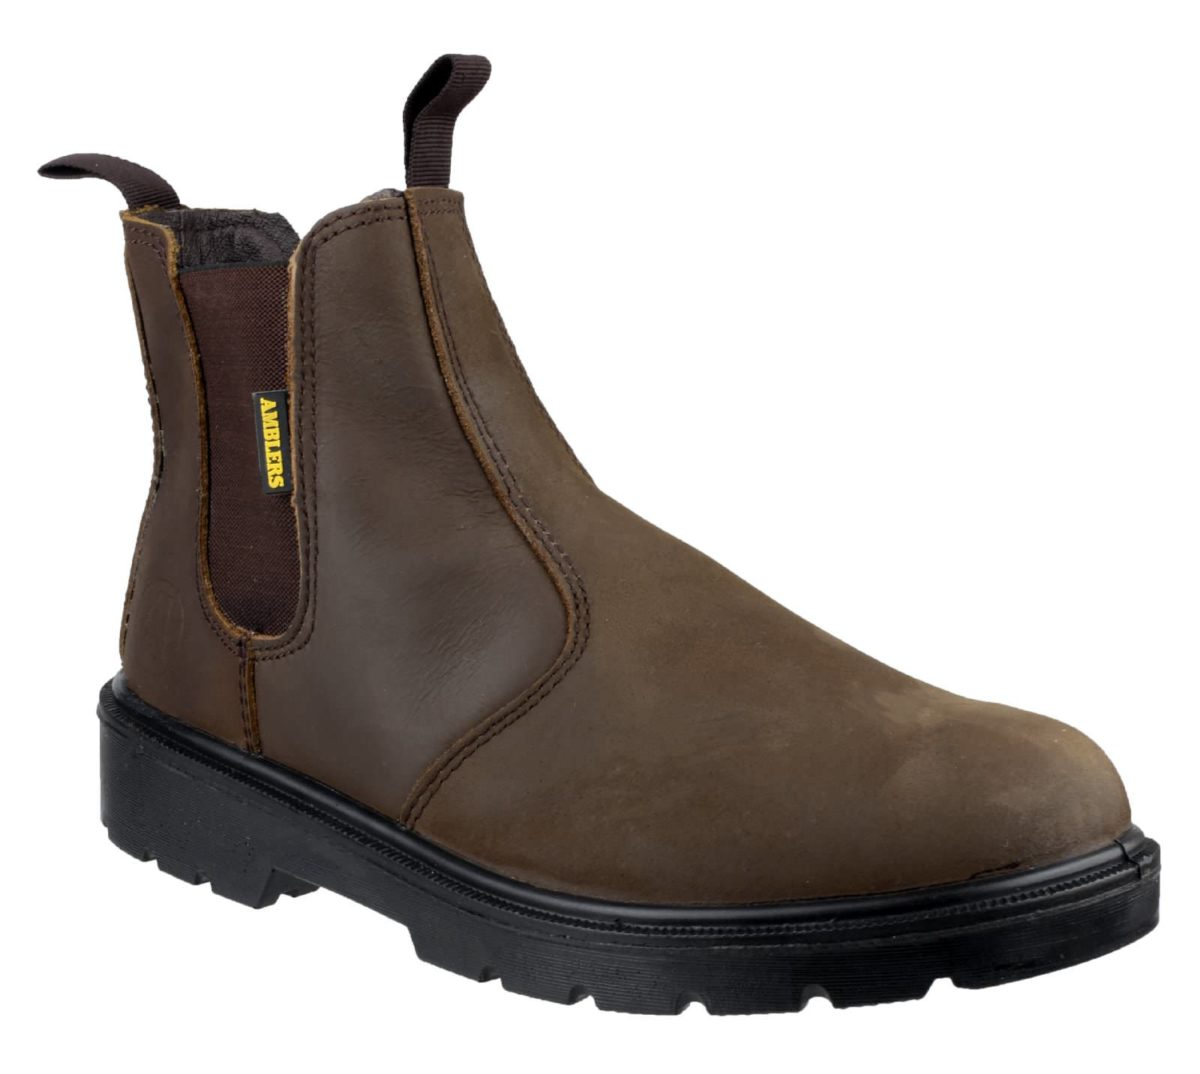 Amblers FS128 Dealer Safety Boot